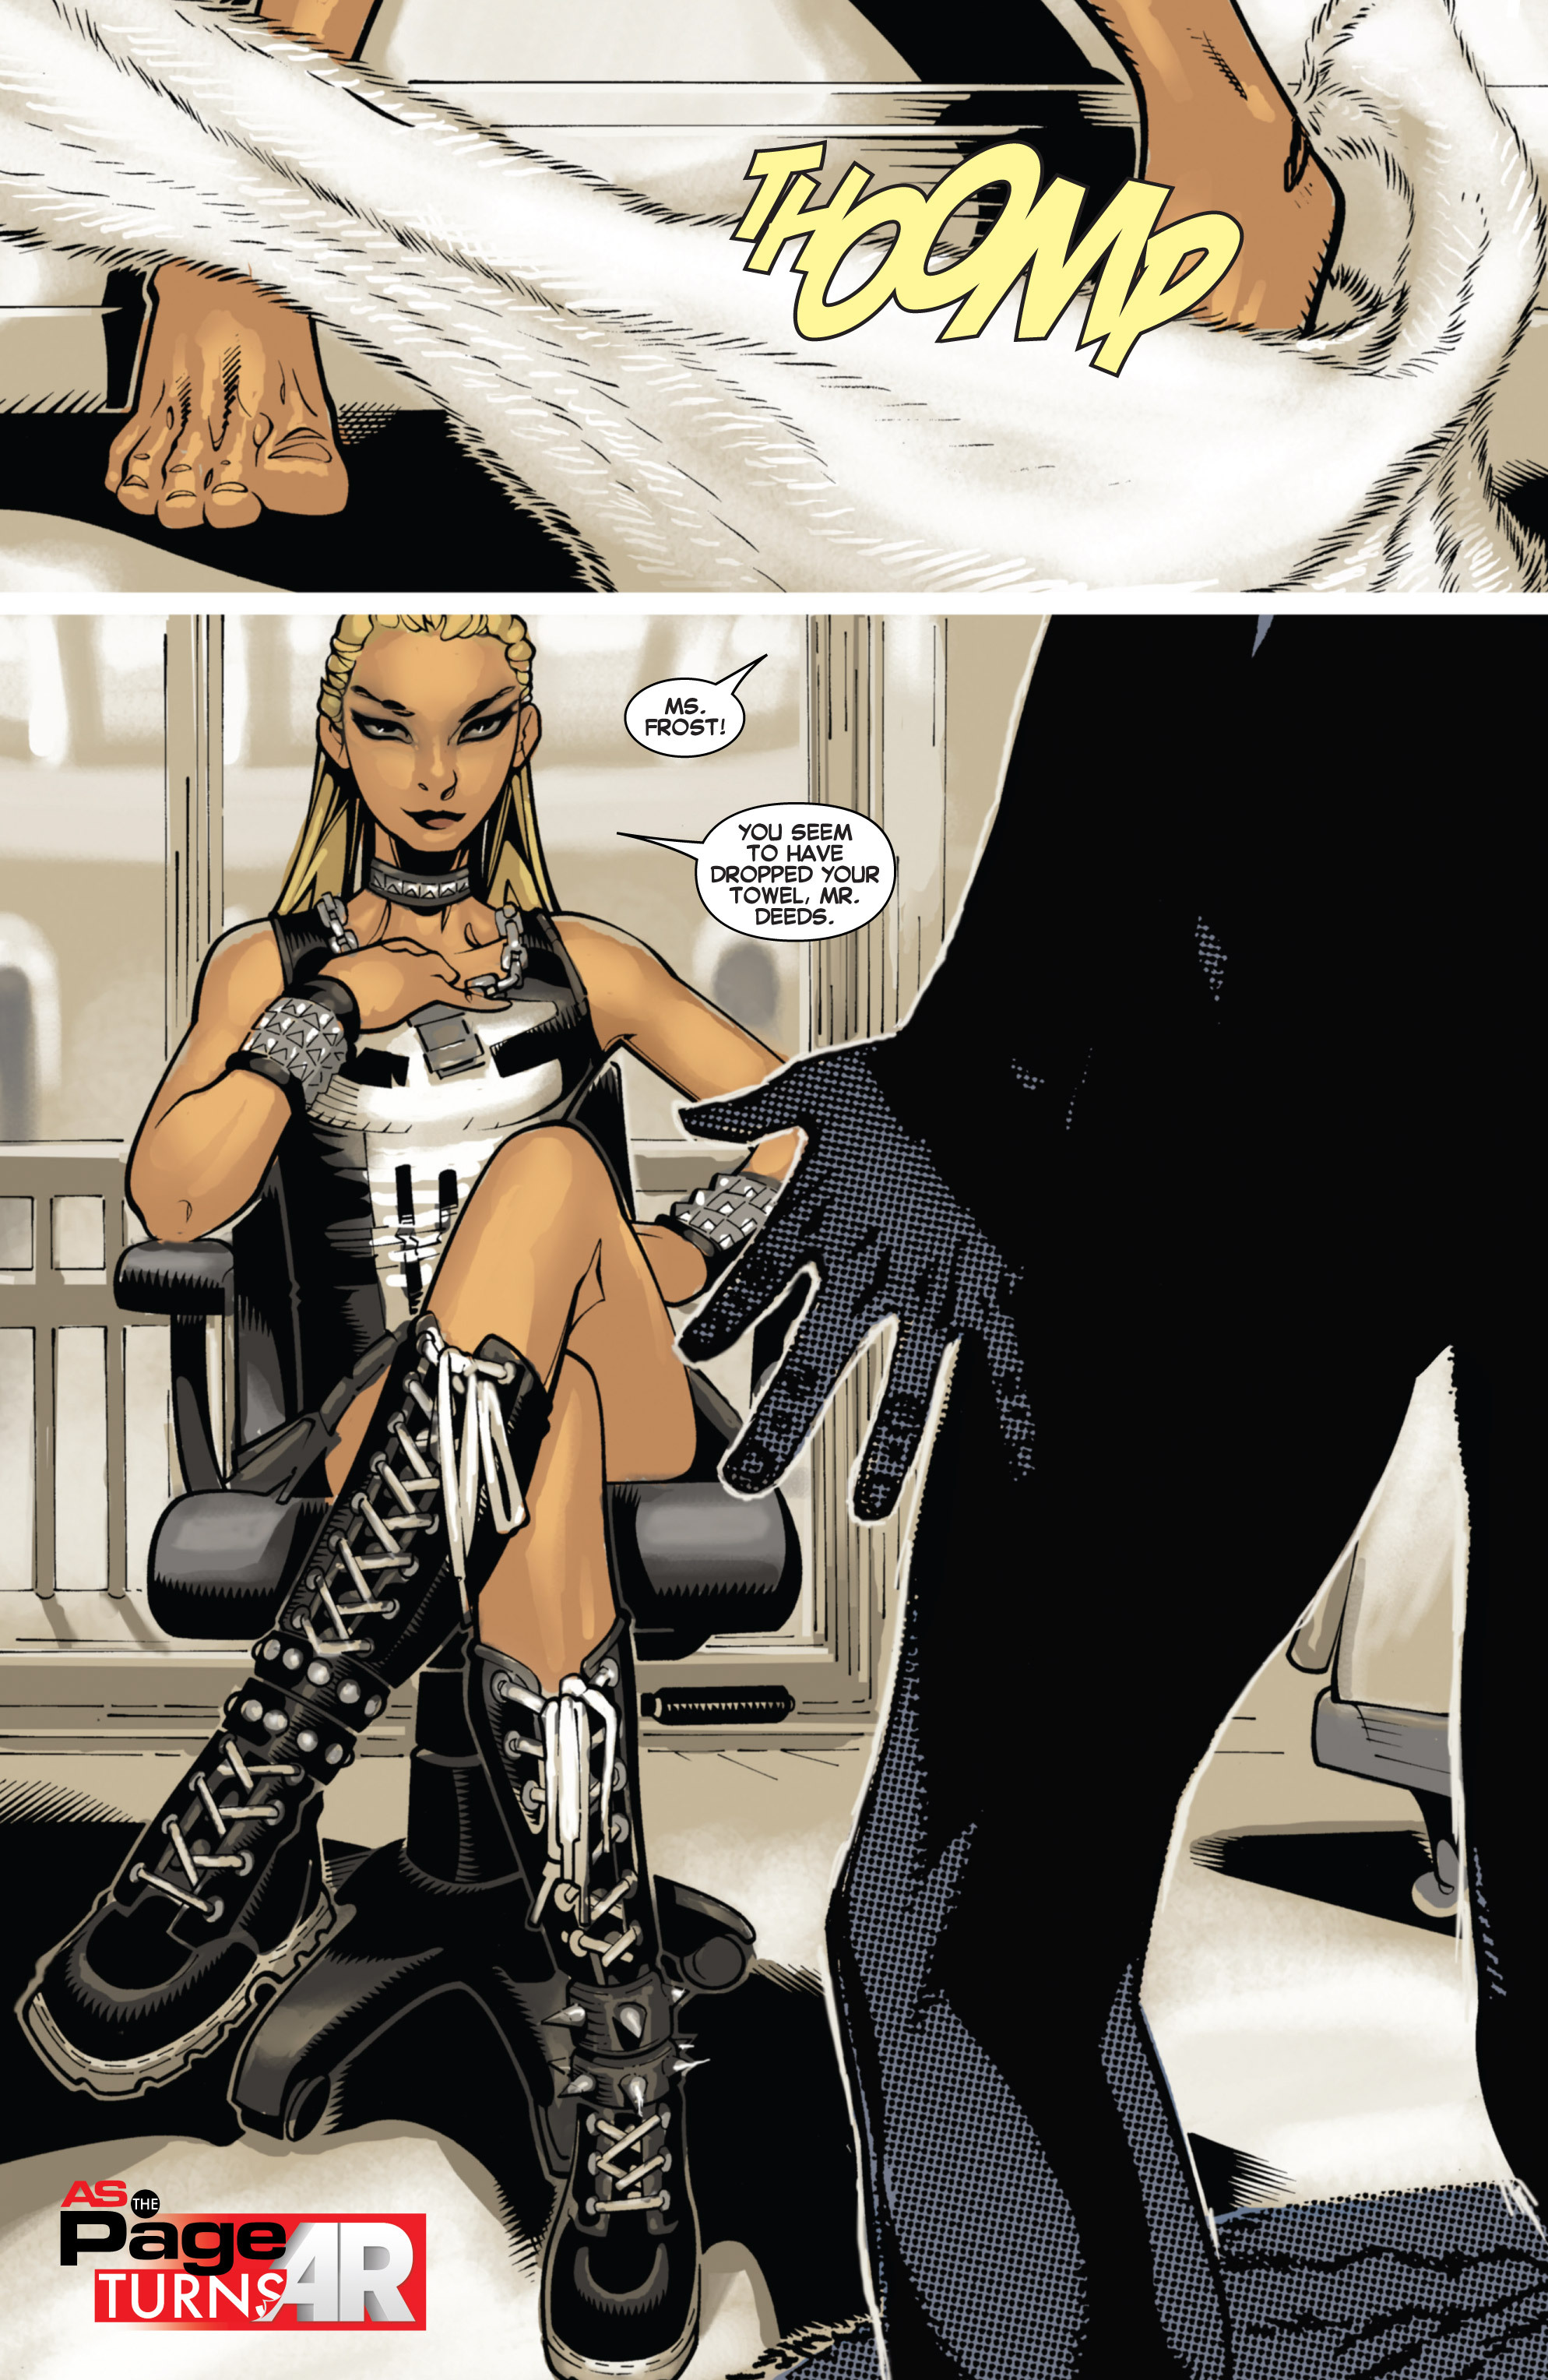 Read online Uncanny X-Men (2013) comic -  Issue # _TPB 3 - The Good, The Bad, The Inhuman - 9